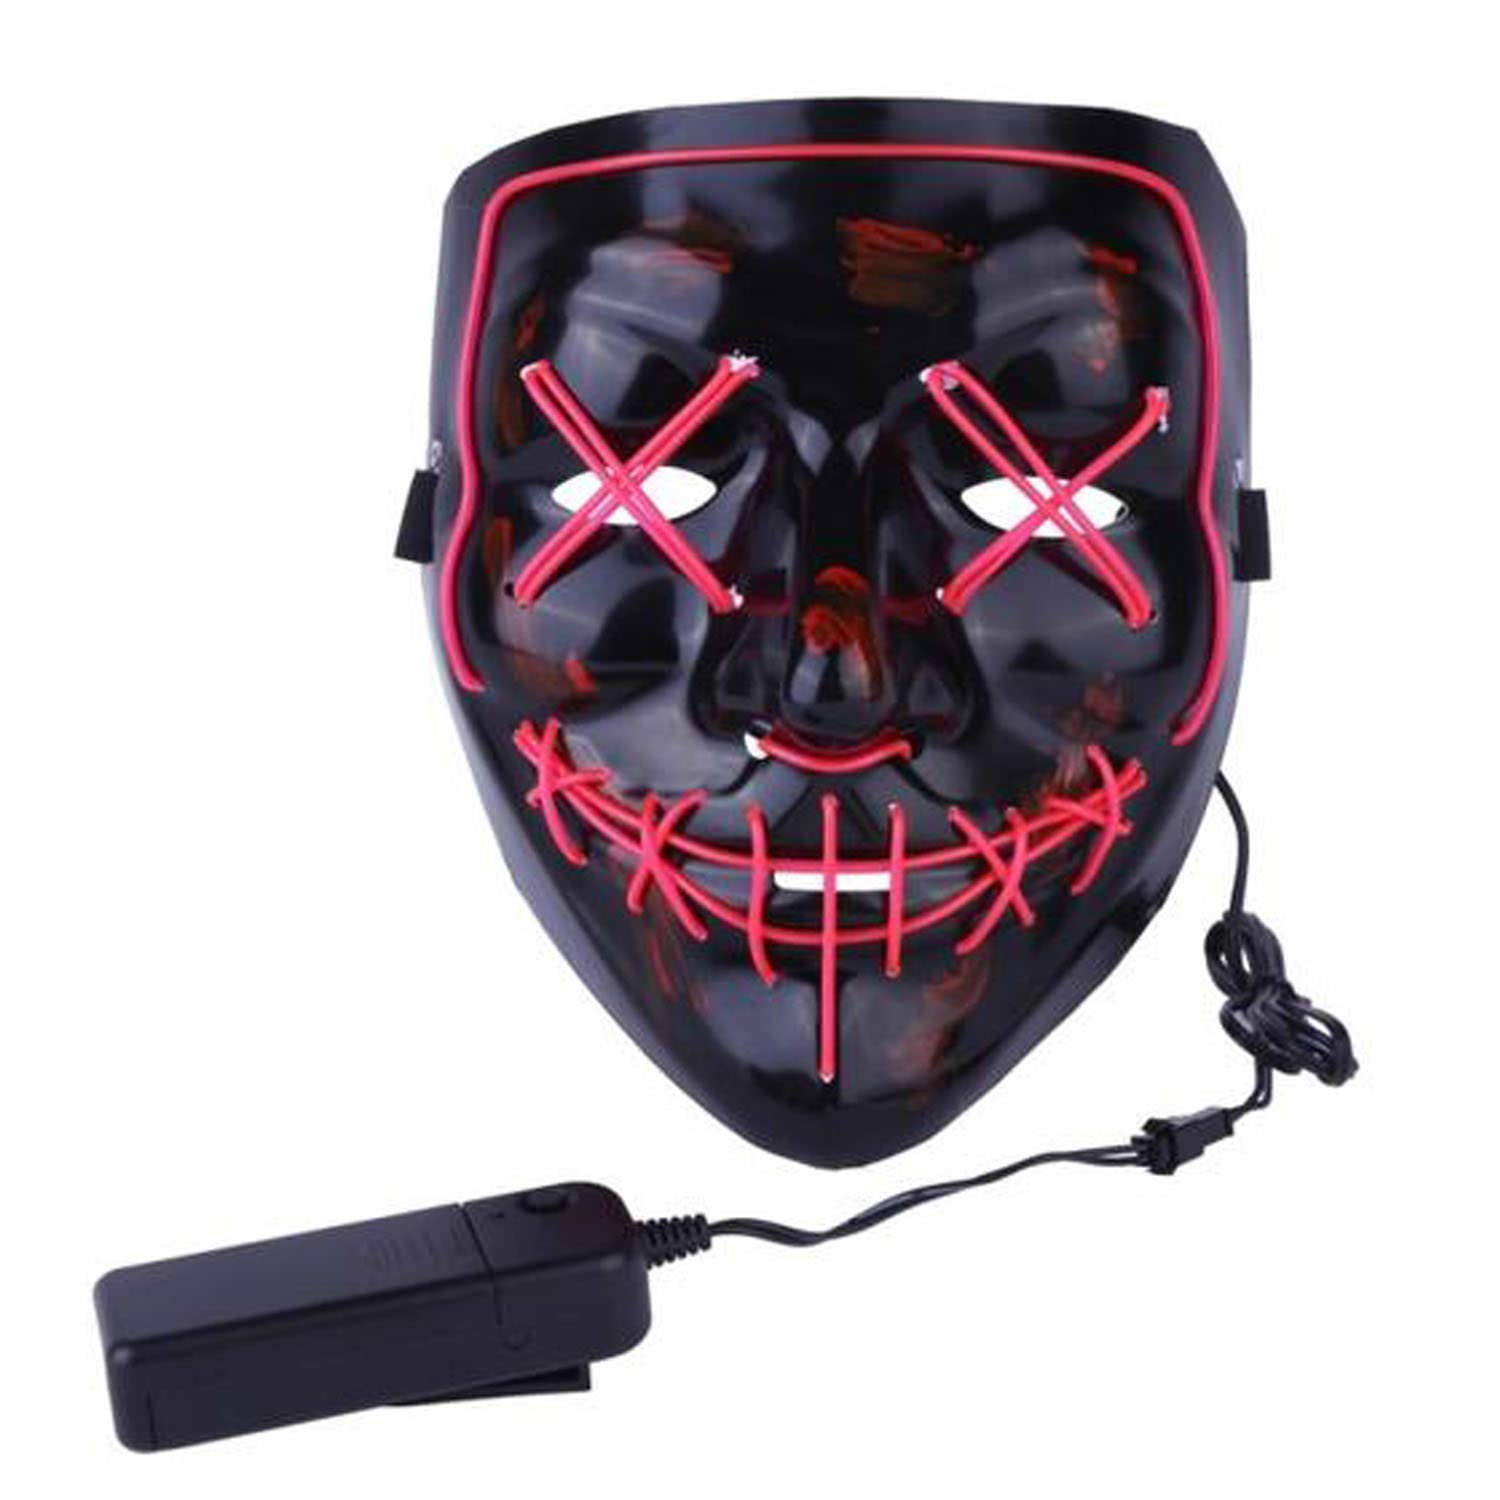 LIFOOST Halloween Scary Mask LED Light Up Party Masks Purge Funny Masks Festival Cosplay Costume Supplies Glow in Dark